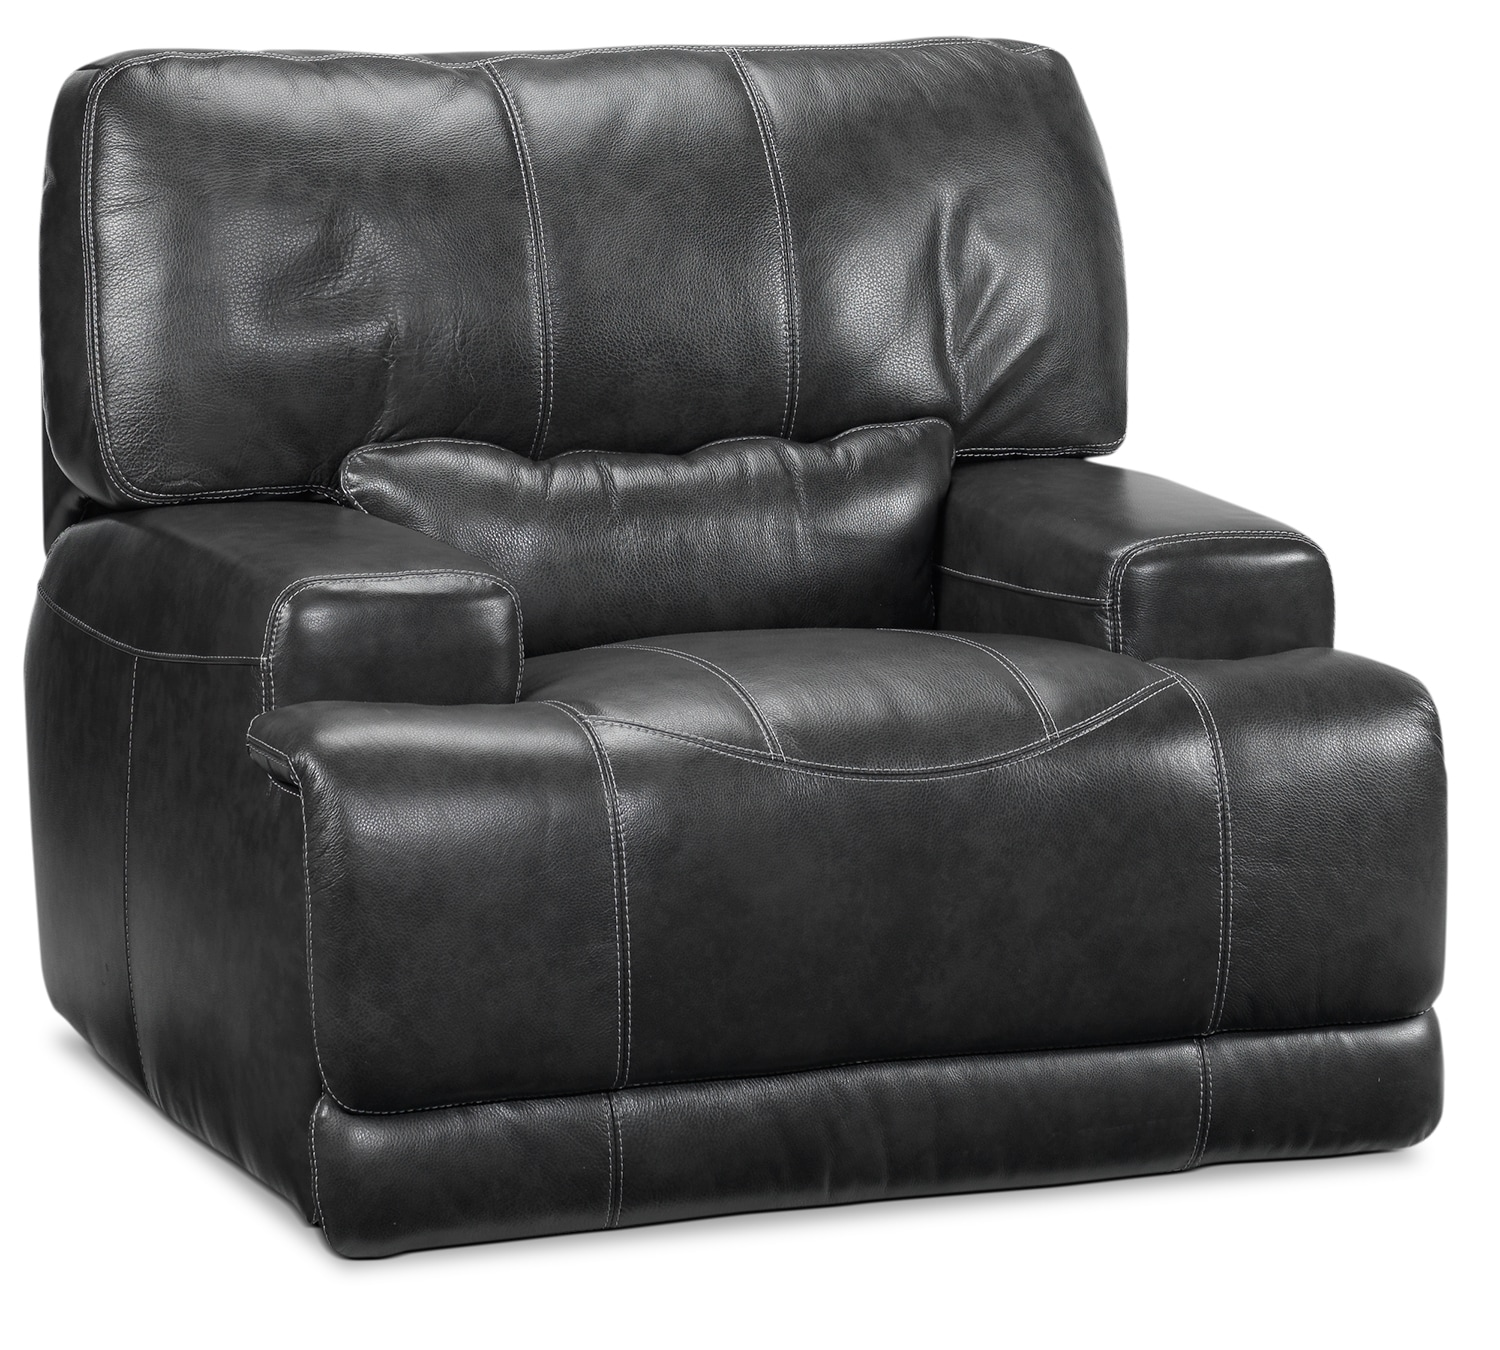 Living Room Furniture - Dearborn Power Recliner - Charcoal